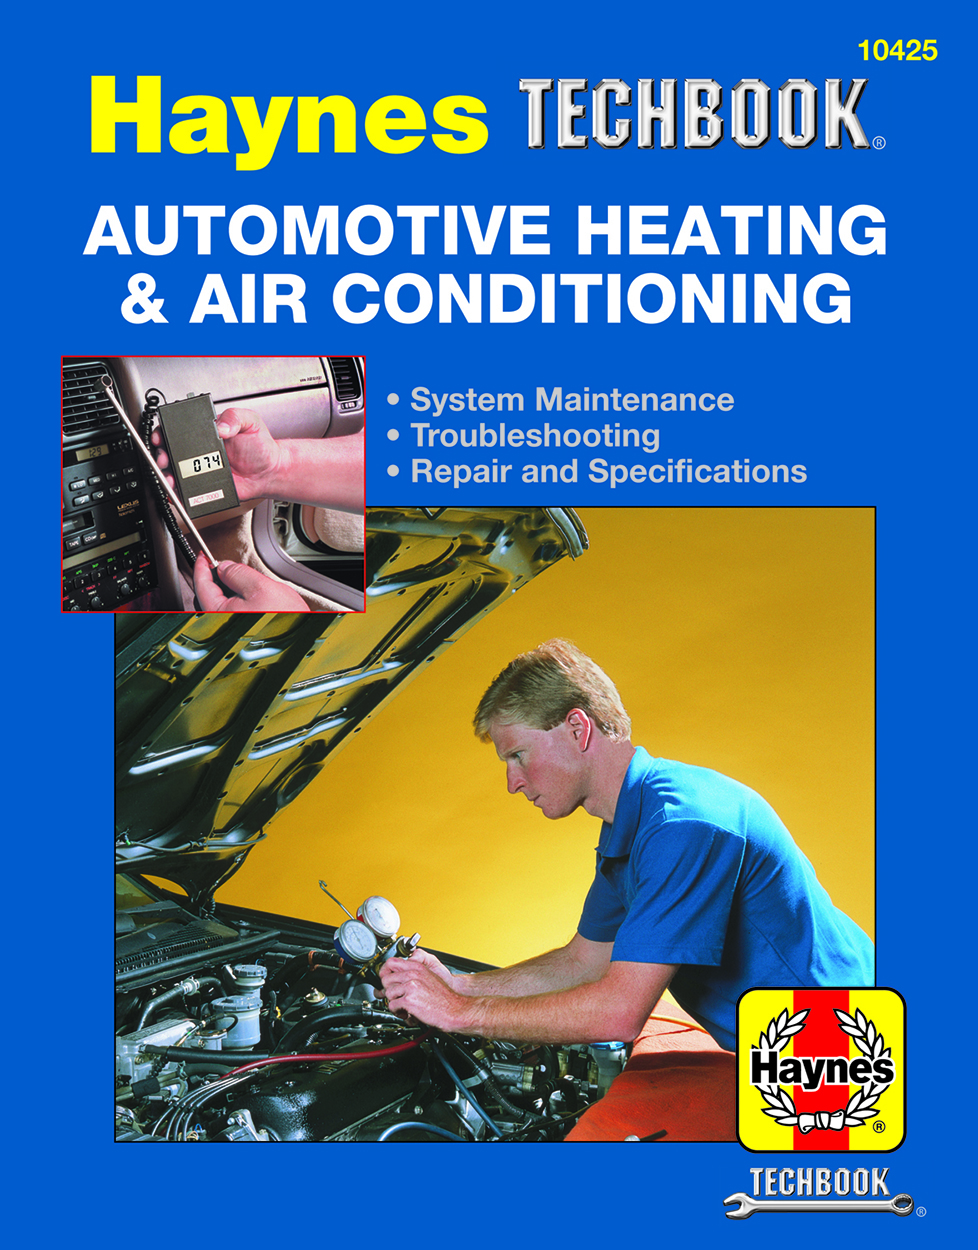 Automotive Heating & Air Conditioning Haynes Techbook (USA)